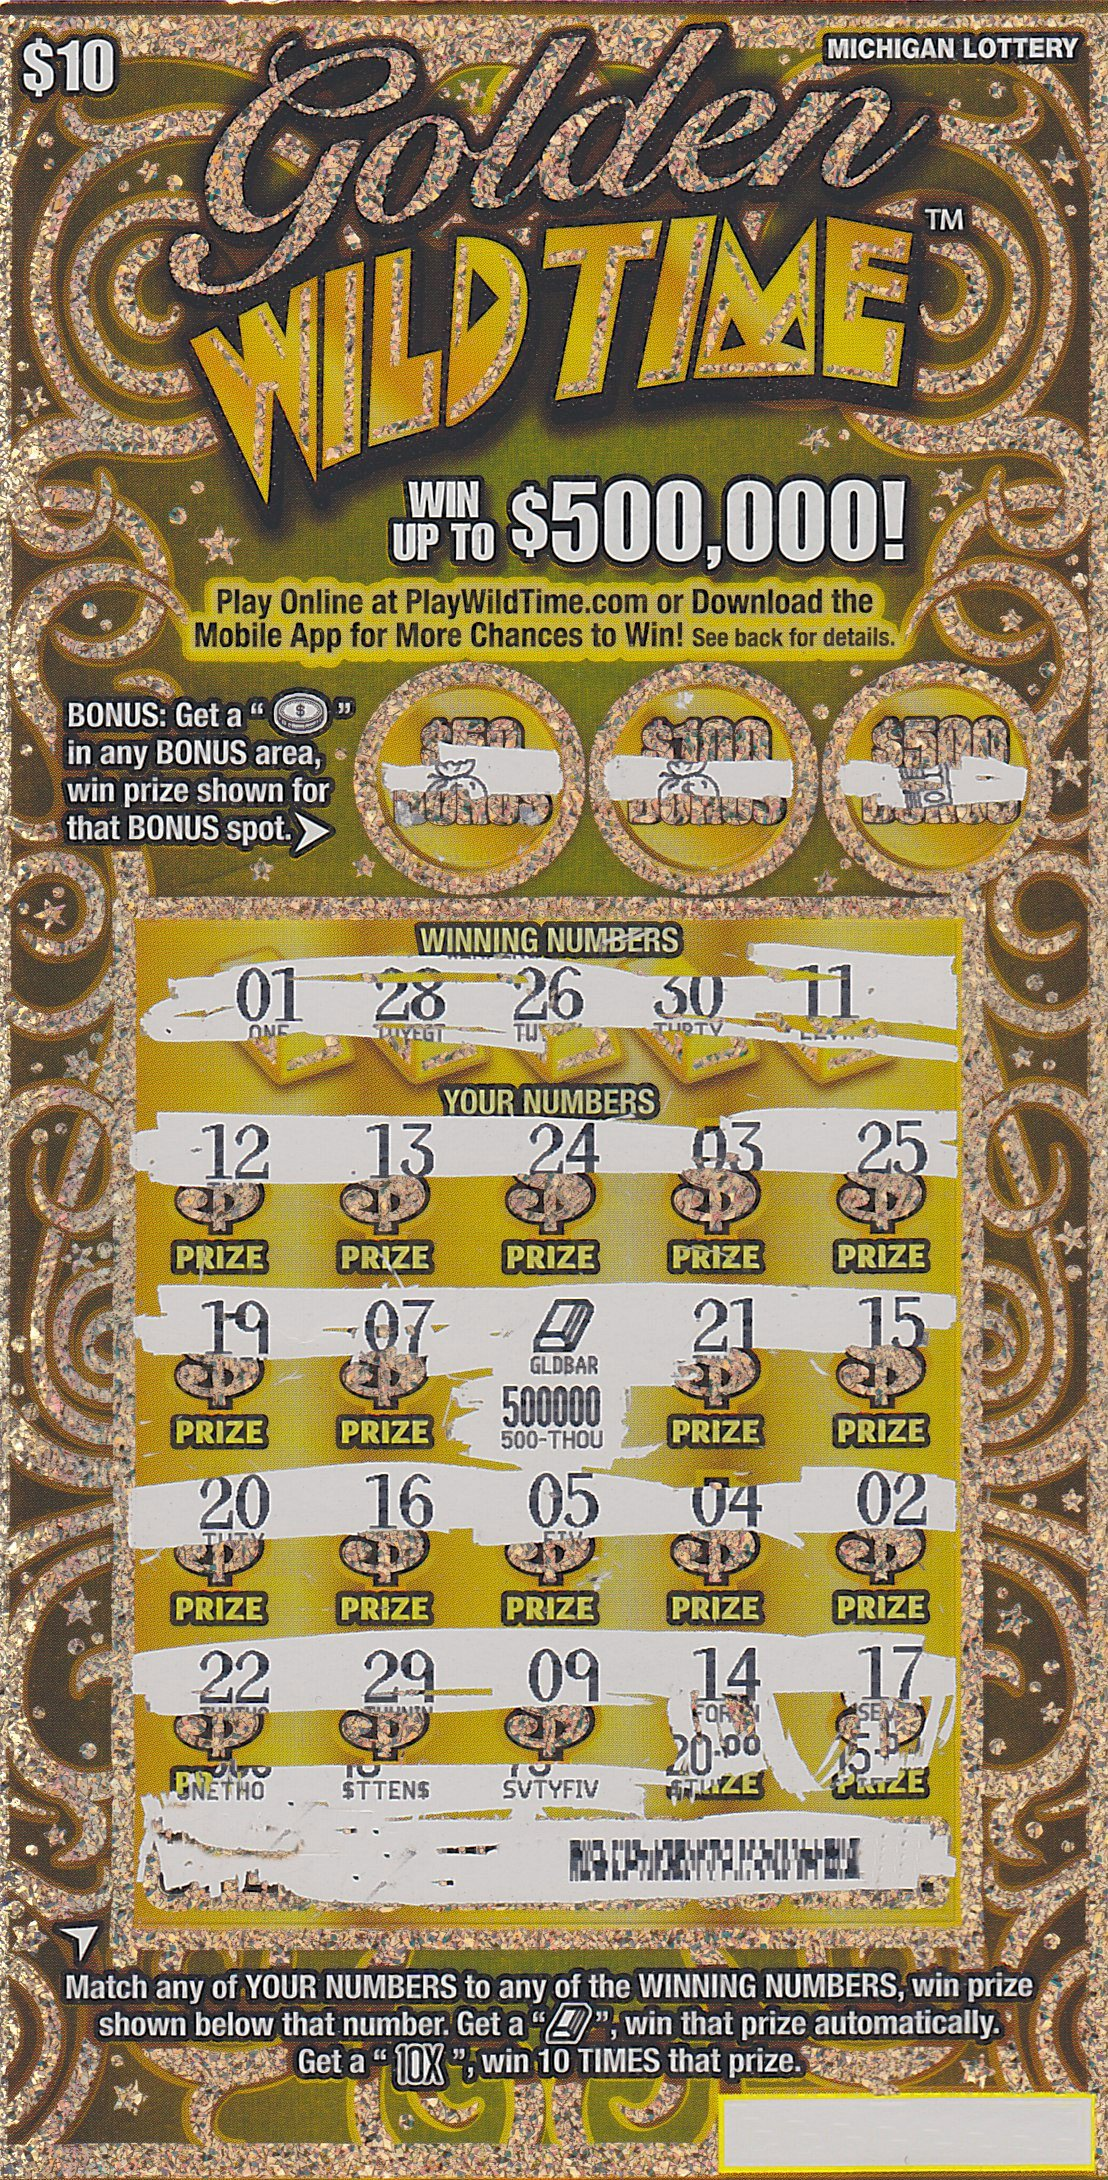 Remaining lottery scratch card prizes in michigan